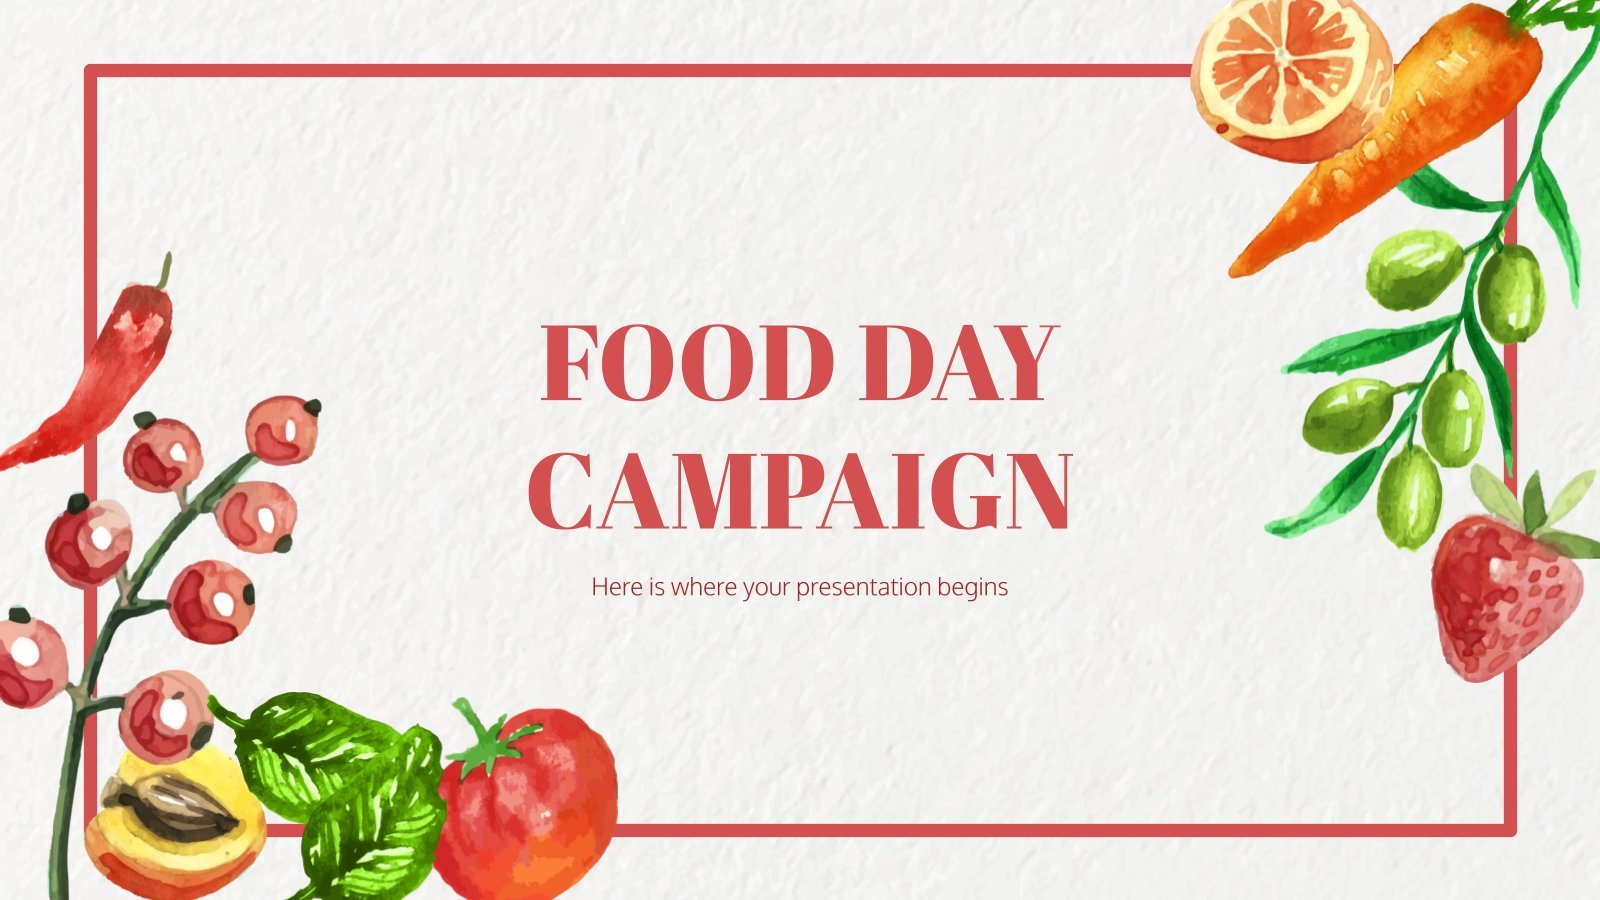 Food Day Campaign presentation template